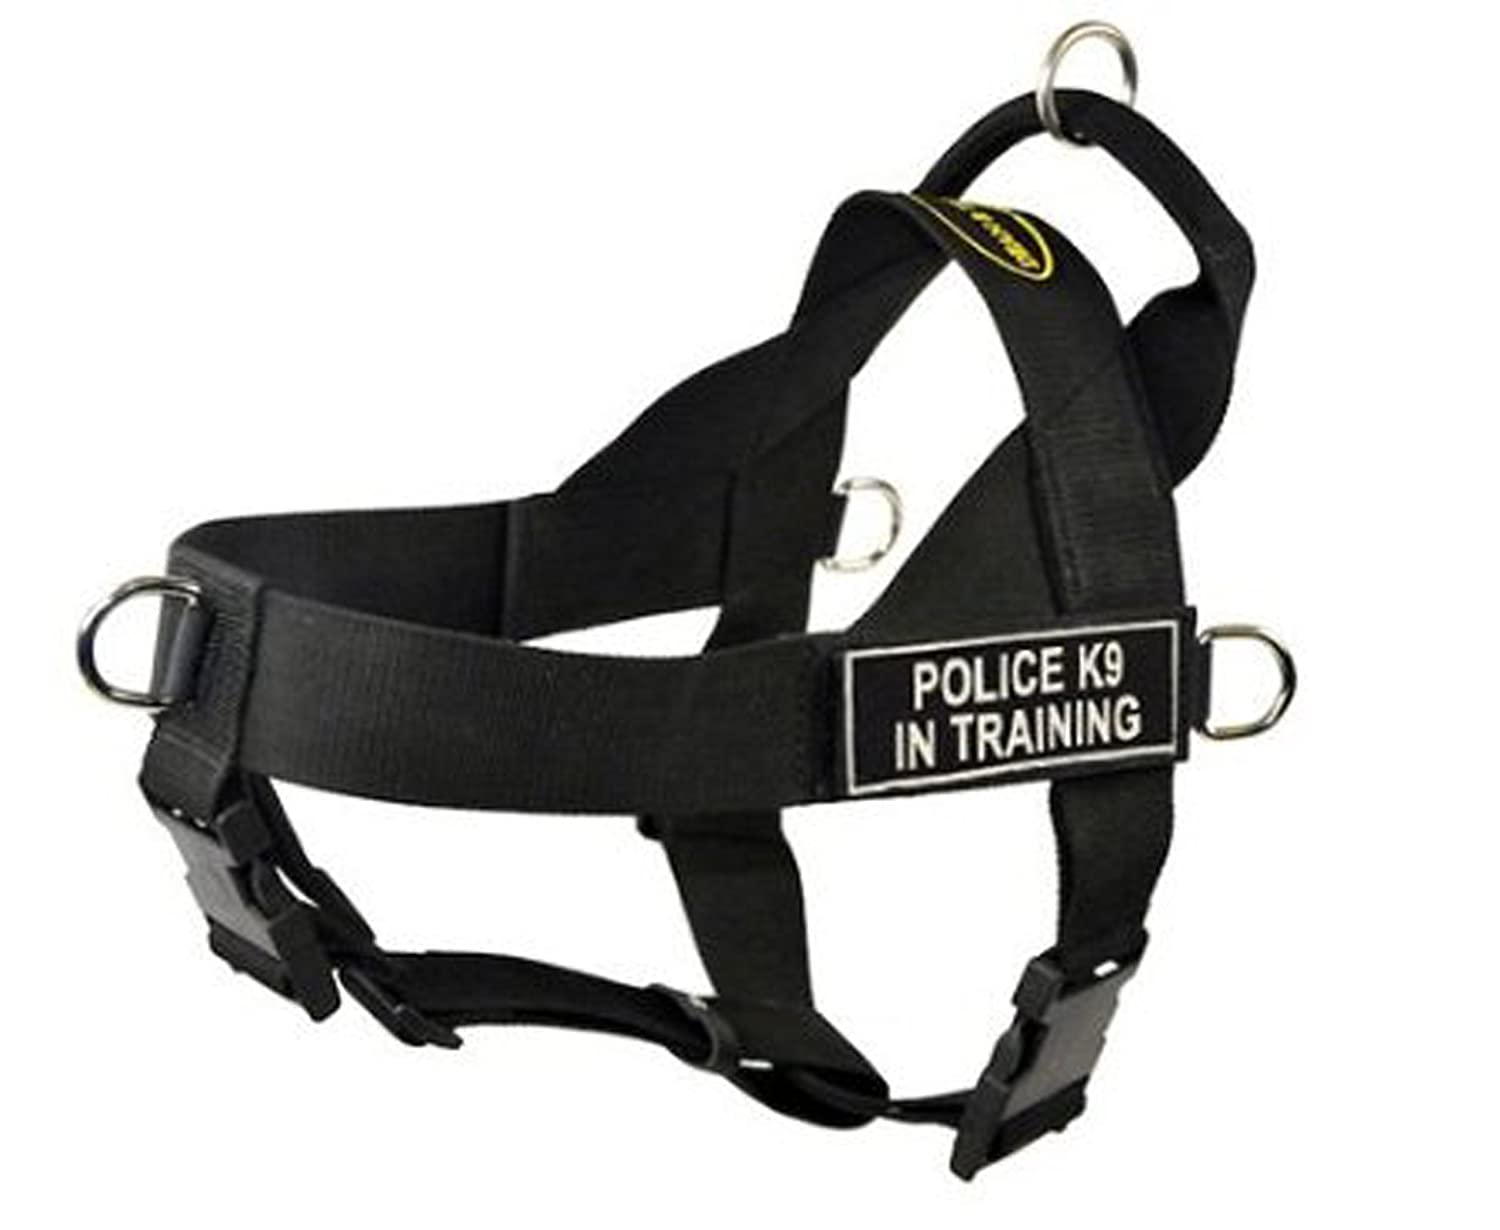 Dean & Tyler Universal No Pull Dog Harness, Police K9 in Training, X-Small, Fits Girth Size  21-Inch to 25-Inch, Black